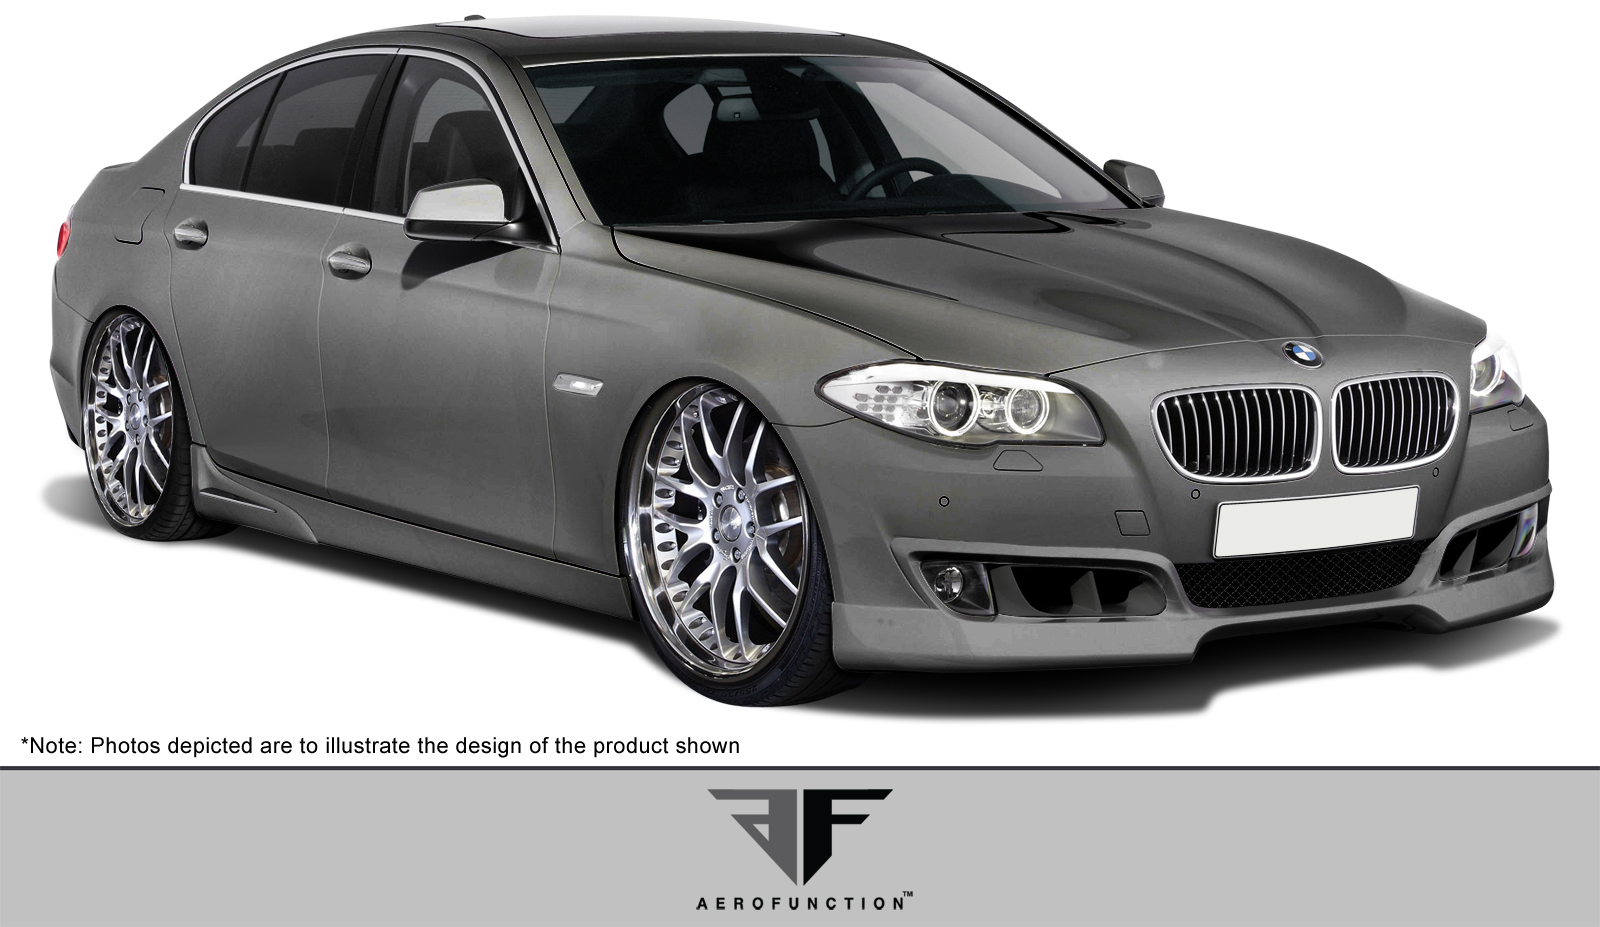 Polyurethane Body Kit Bodykit for 2013 BMW 5 Series 4DR - BMW 5 Series F10 AF-1 Body Kit ( PUR-RIM ) - 4 Piece - Includes F10 AF1 Front Add-On Spoiler